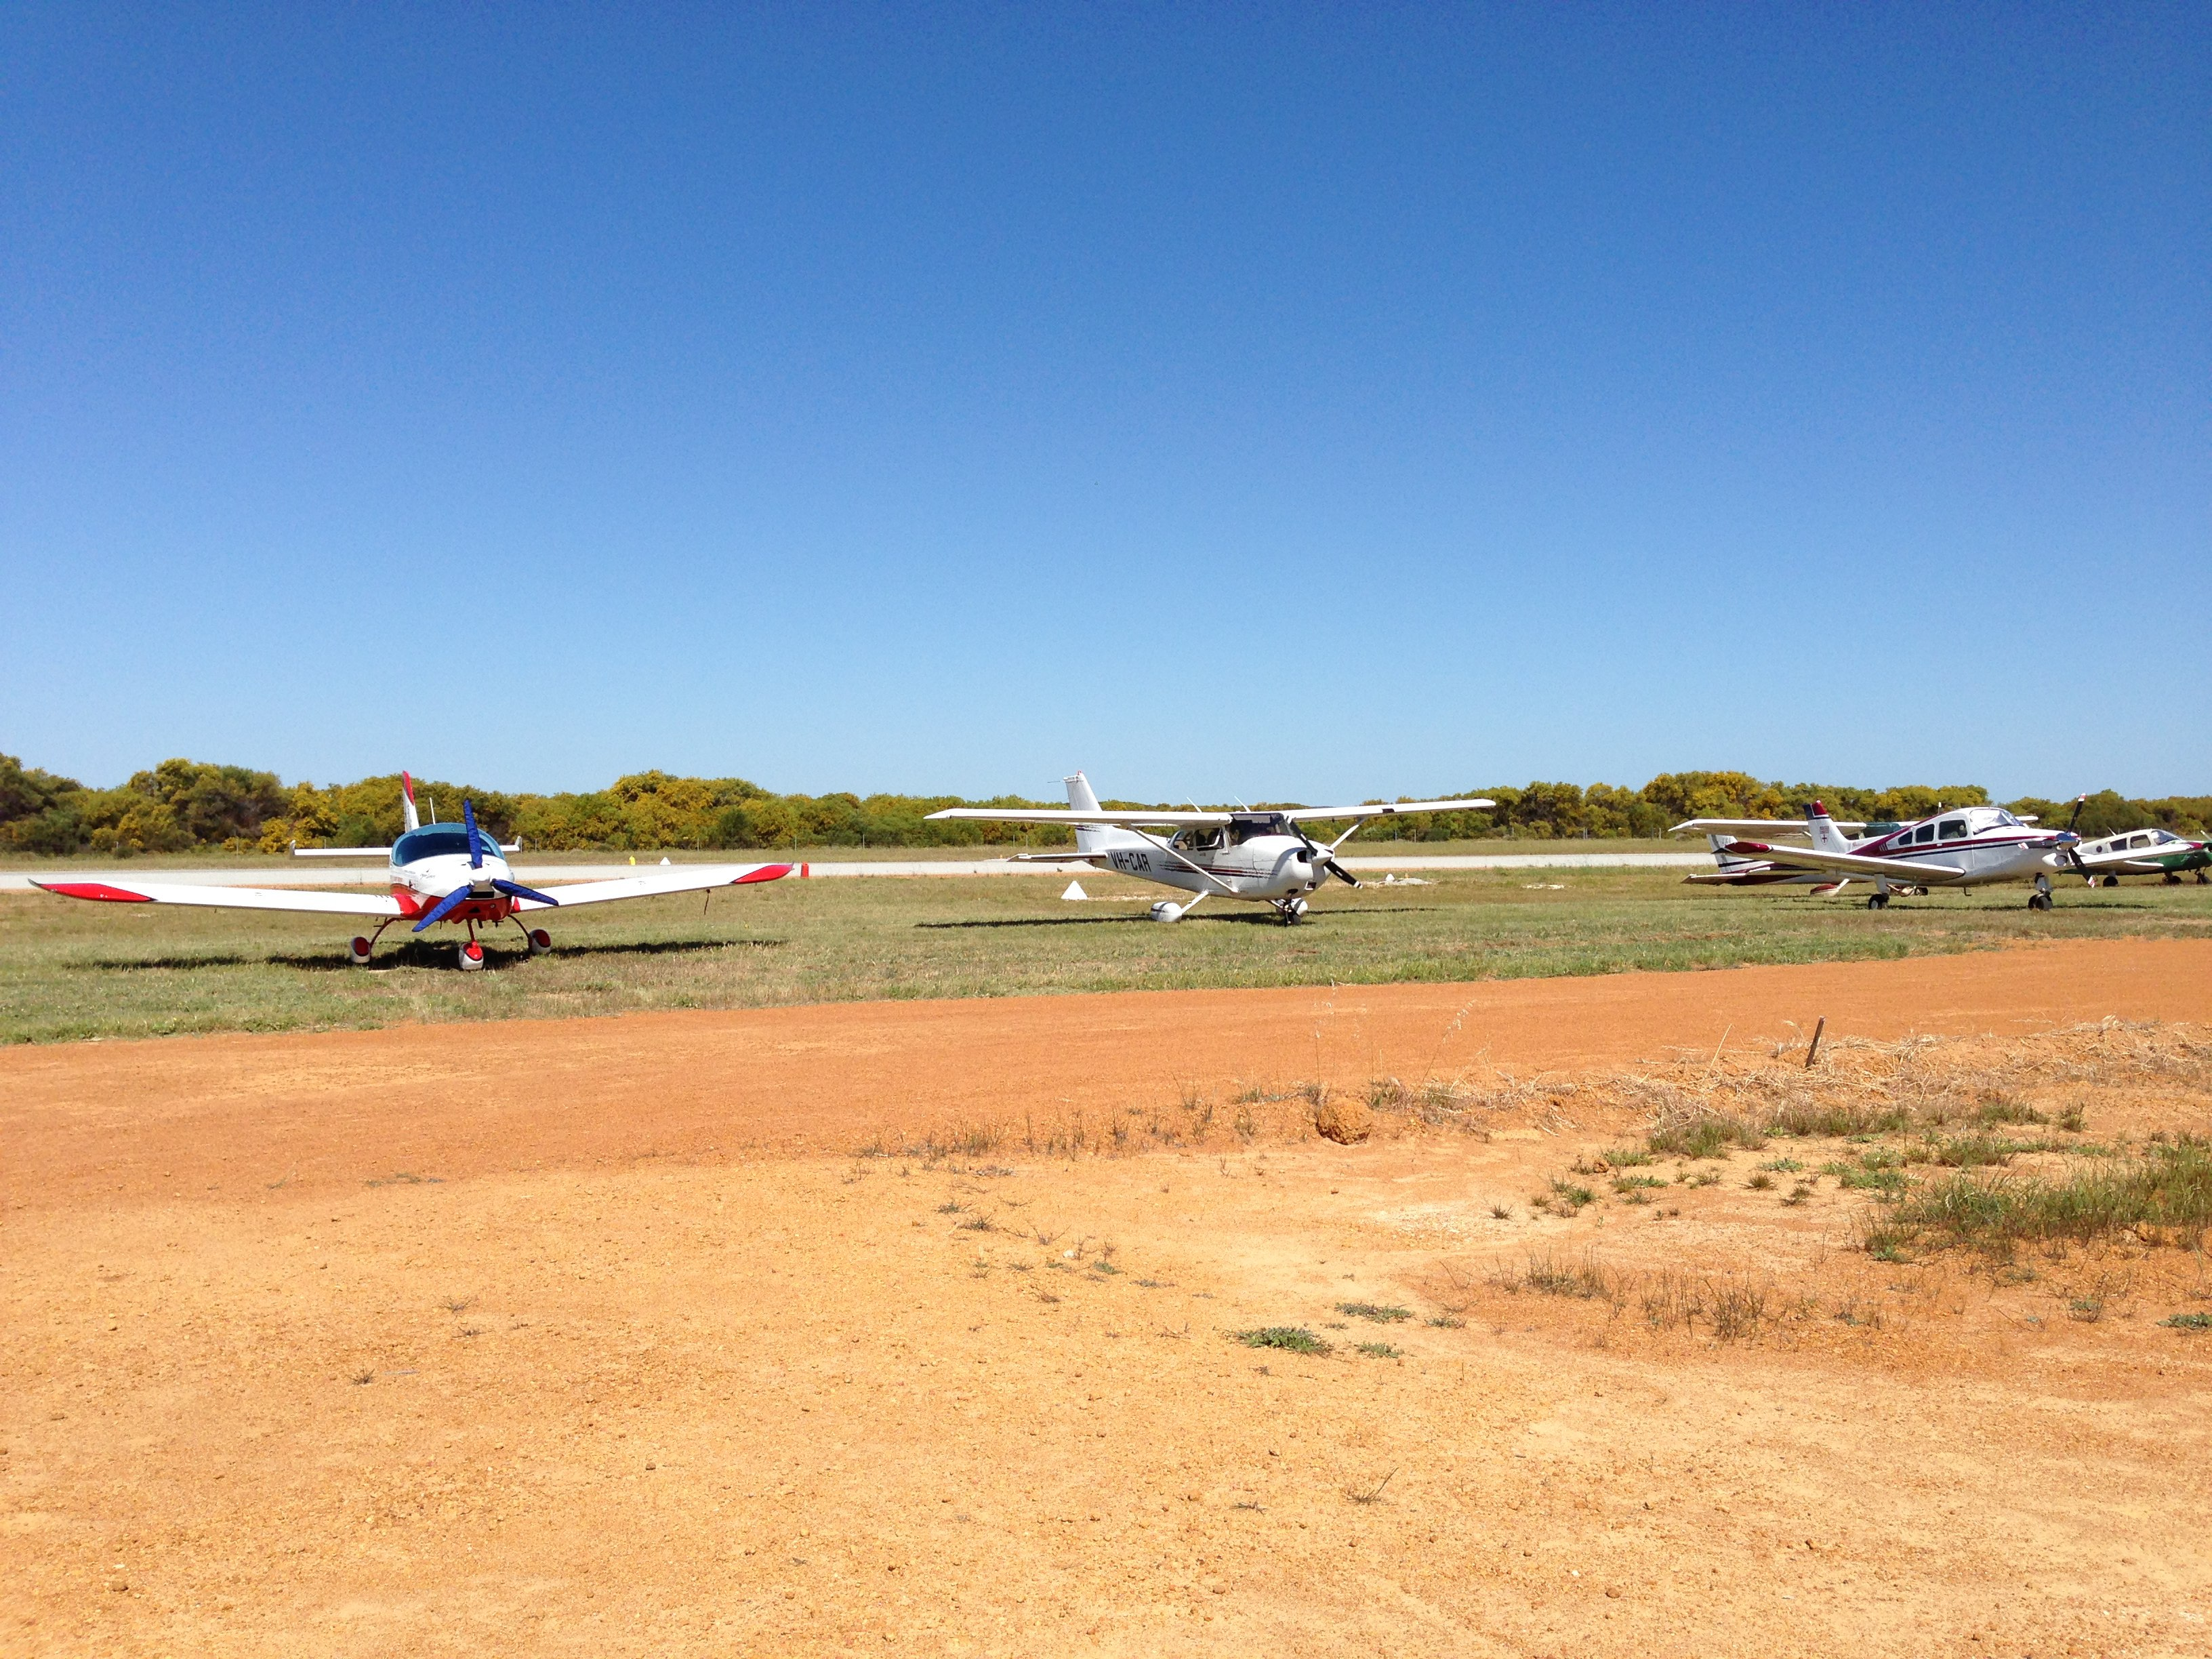 VH-EZT CSA pipersport sportscruiser parked at Jurien Bay Airport